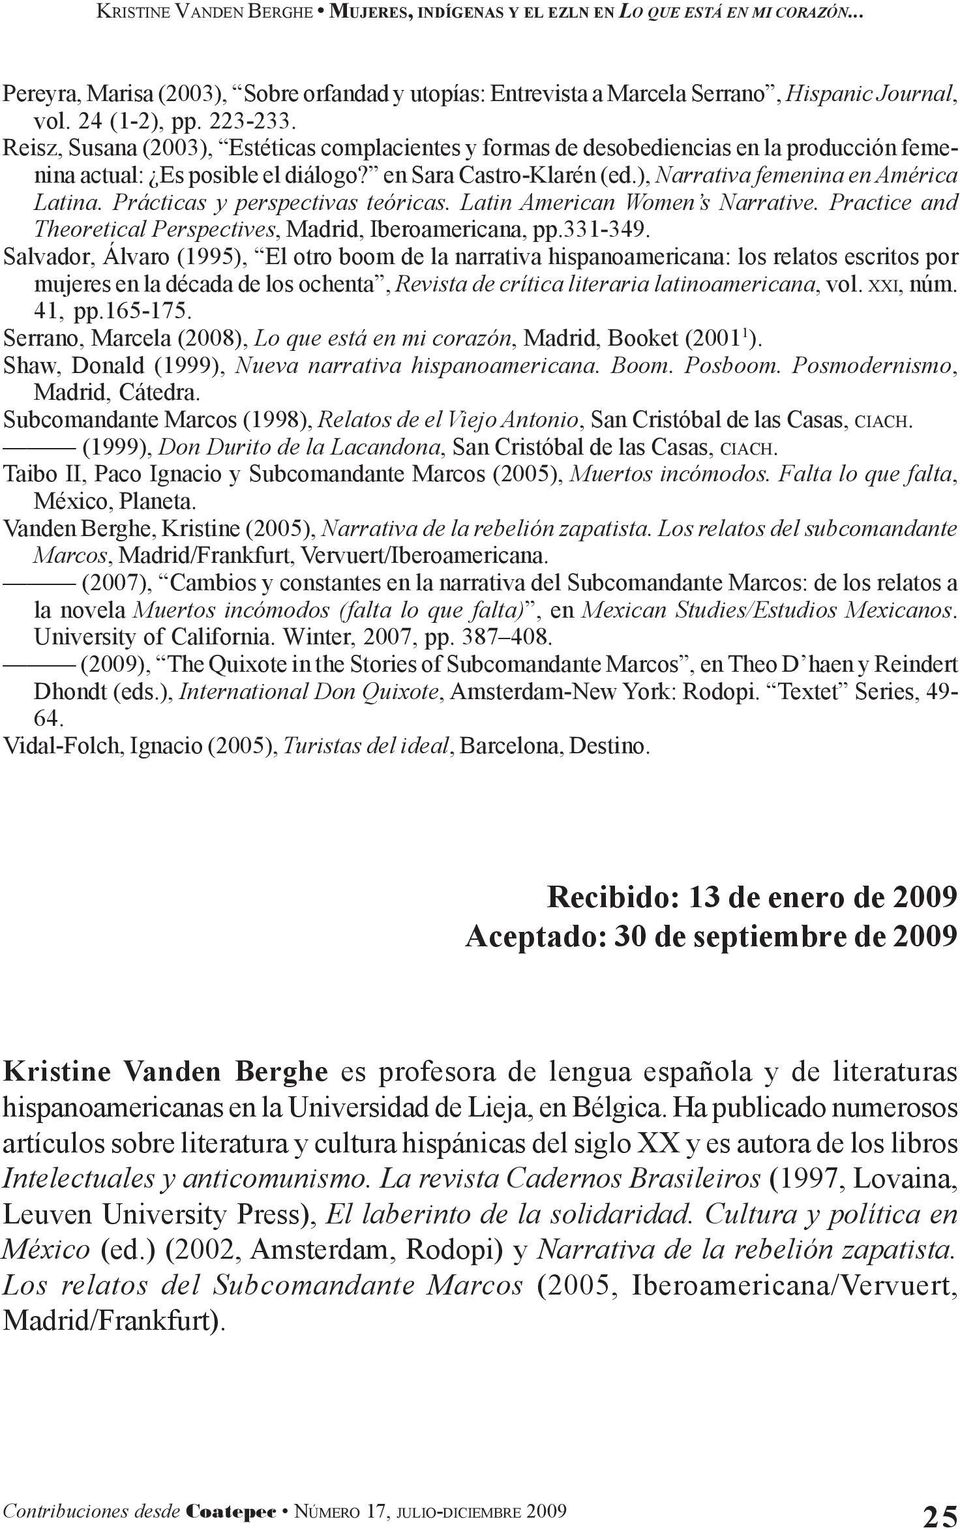 Prácticas y perspectivas teóricas. Latin American Women s Narrative. Practice and Theoretical Perspectives, Madrid, Iberoamericana, pp.331-349.